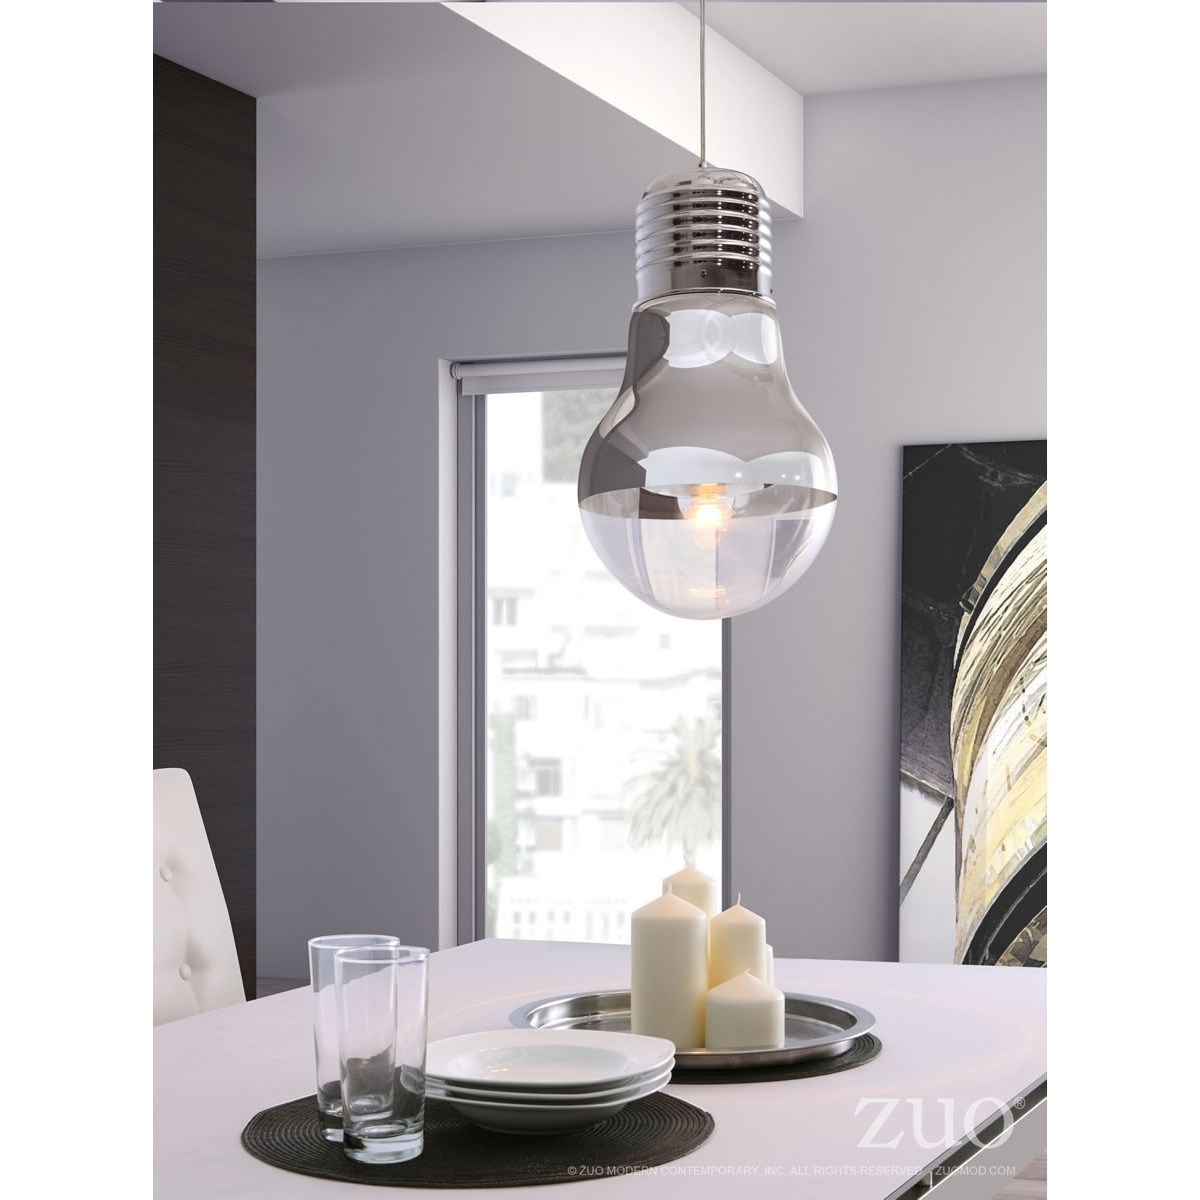 Pure Lighting Gliese Ceiling Lamp by Zuo at Nassau Furniture and Mattress